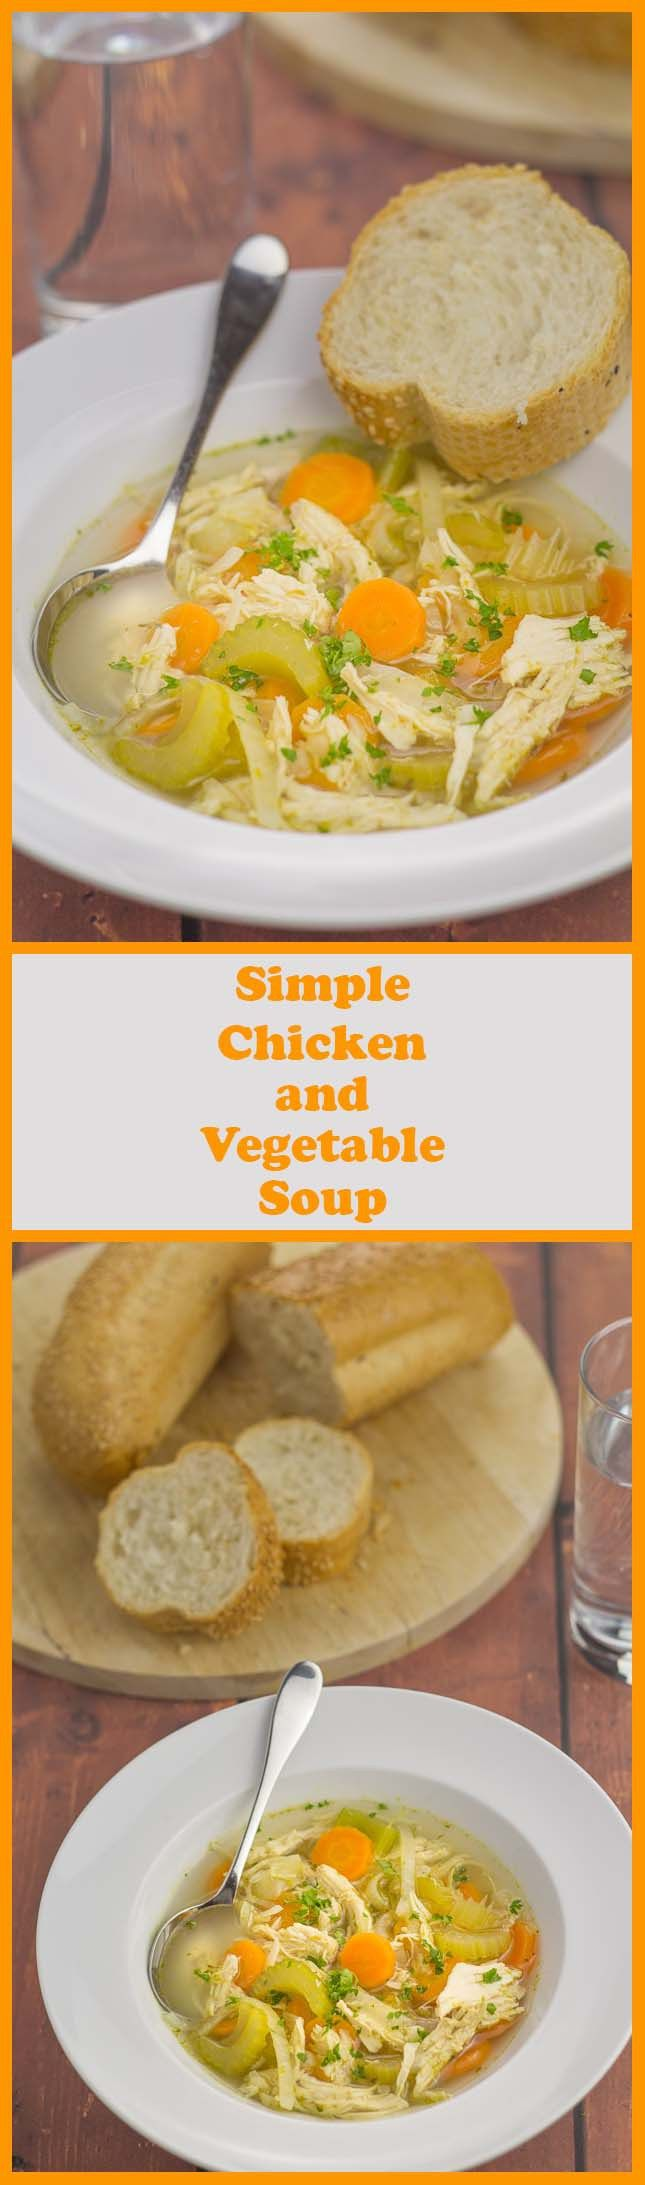 Simple chicken and vegetable soup. Simple because it's made with basic vegetables, a chicken breast and stock cubes. You can easily add your own selection of seasonal vegetables or vegetables to use up too. All in all, this is a really tasty, versatile and satisfying simple soup recipe.